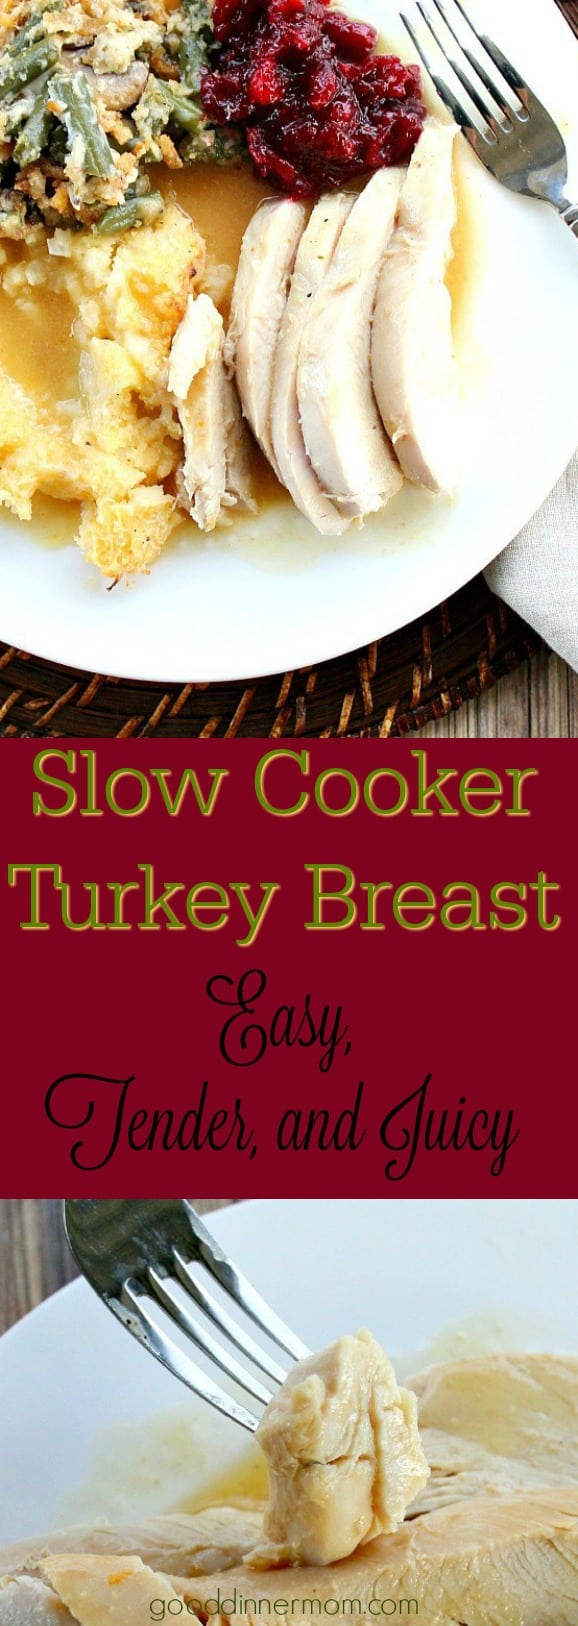 Slow Juicer Turkey : Slow Cooker Turkey Breast Good Dinner Mom